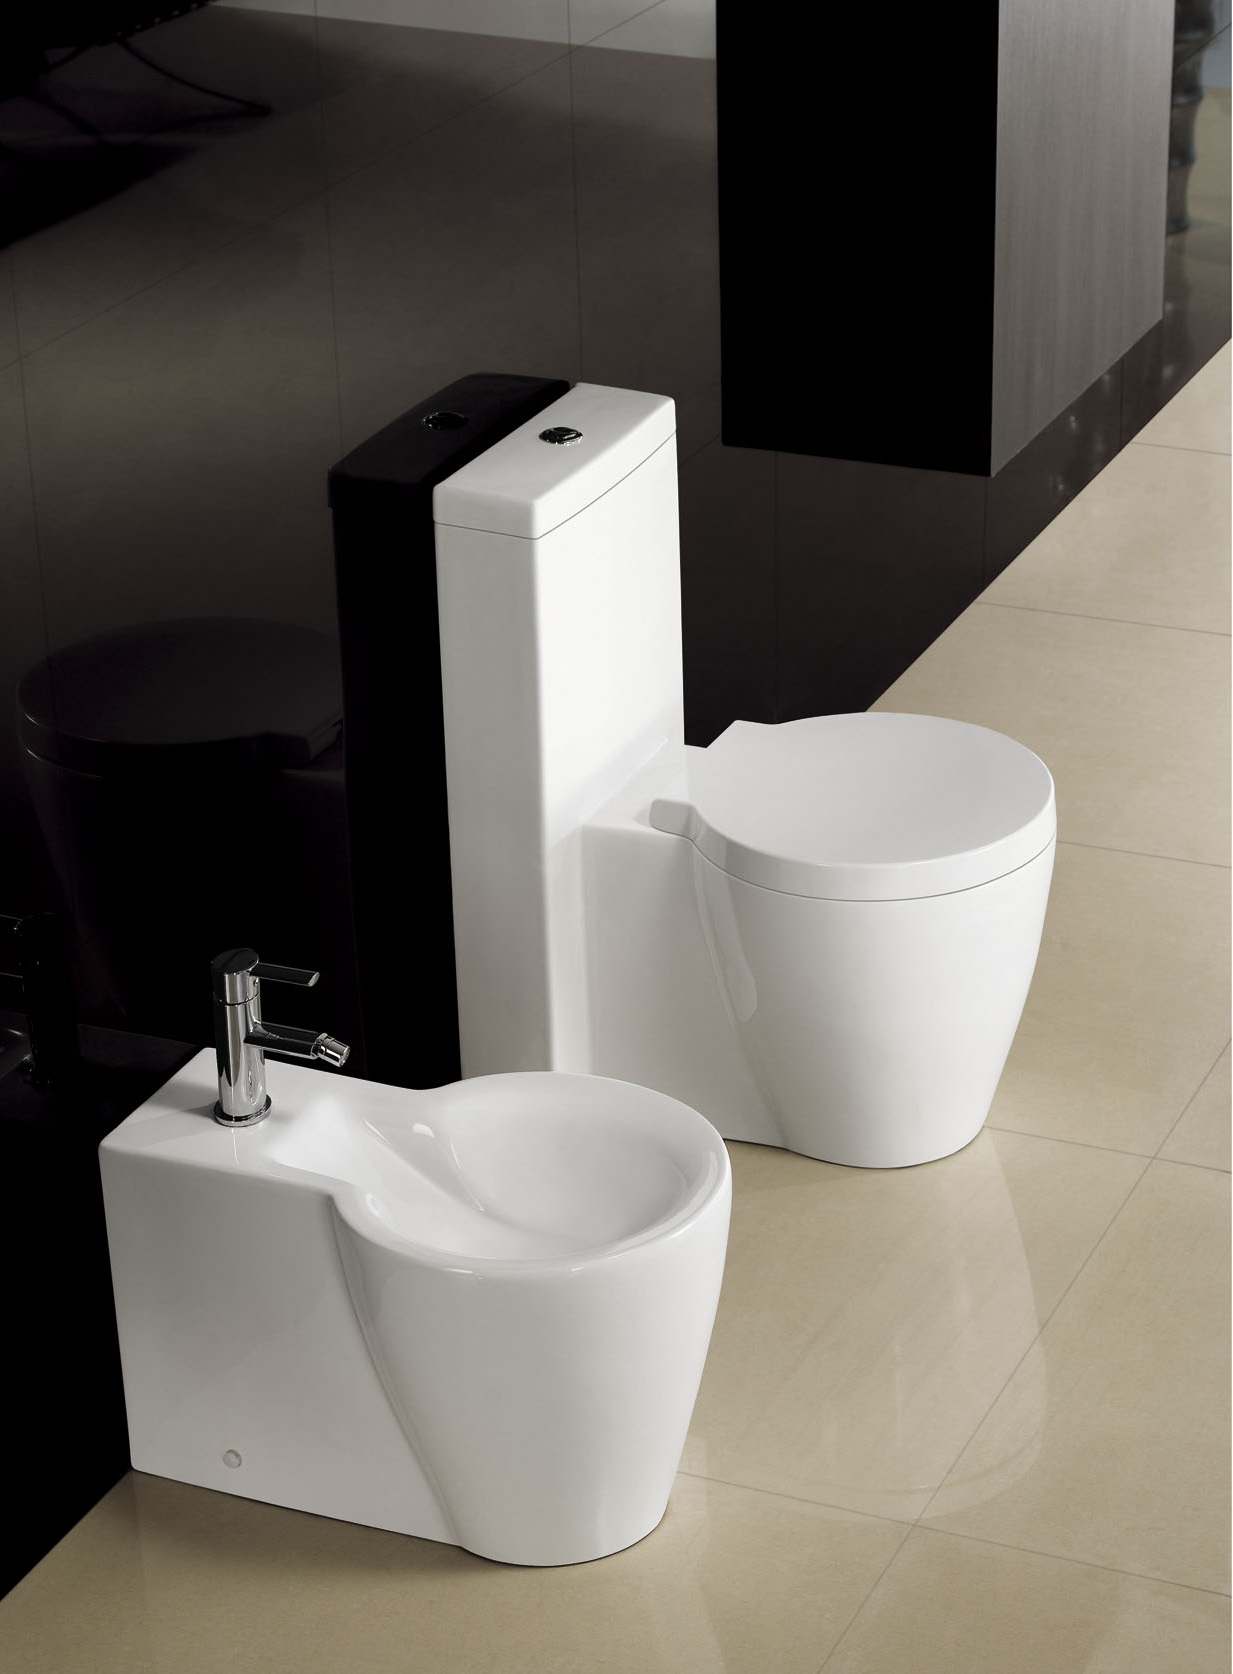 modern toilet bathroom toilet one peice toilet dual flush ferrara. Black Bedroom Furniture Sets. Home Design Ideas